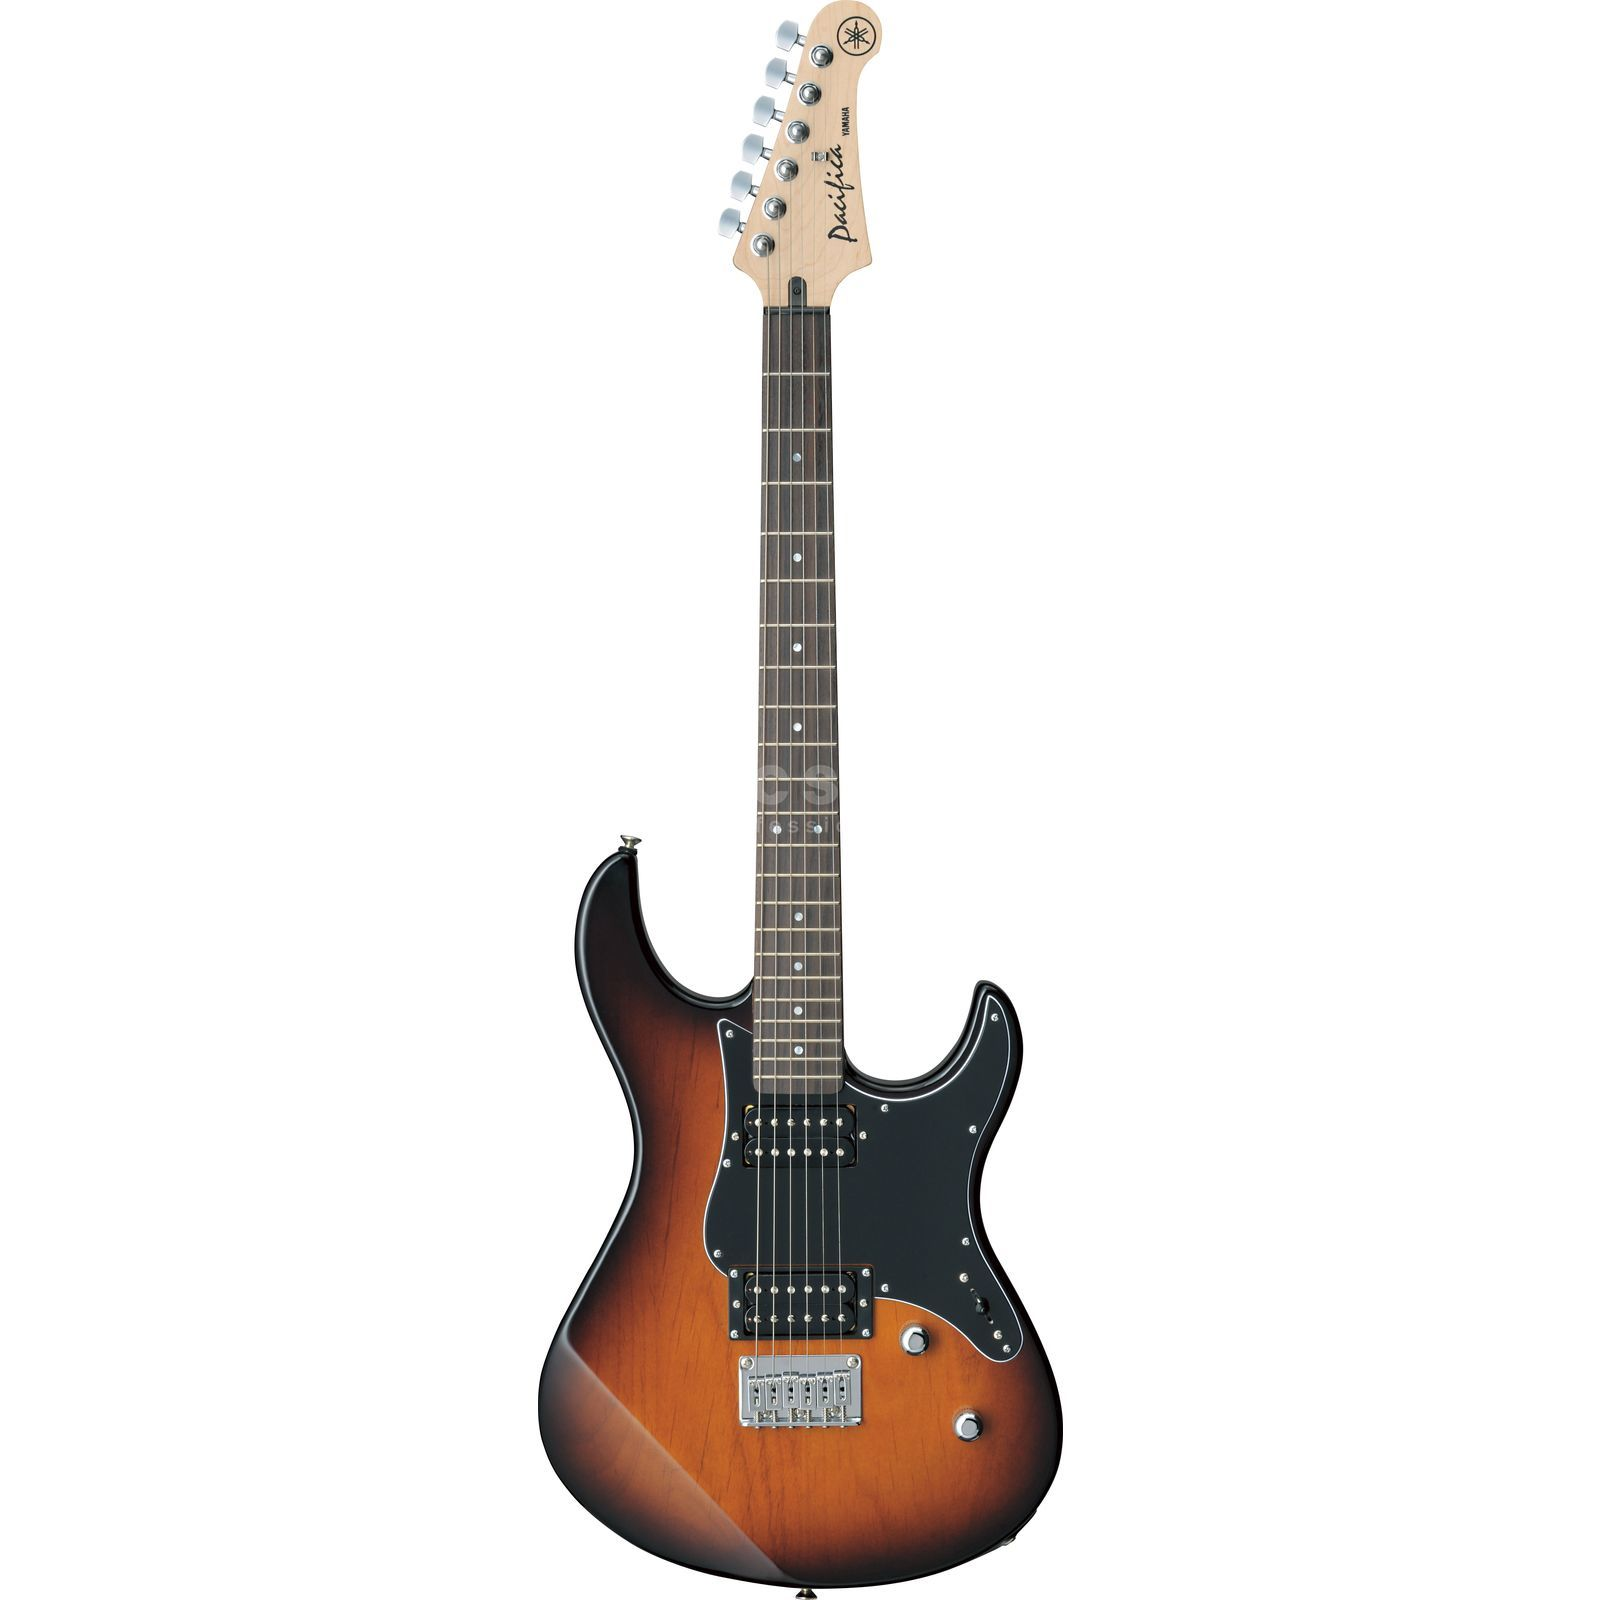 Yamaha PA120H Electric Guitar, Tobacc o Brown Sunburst   Produktbillede